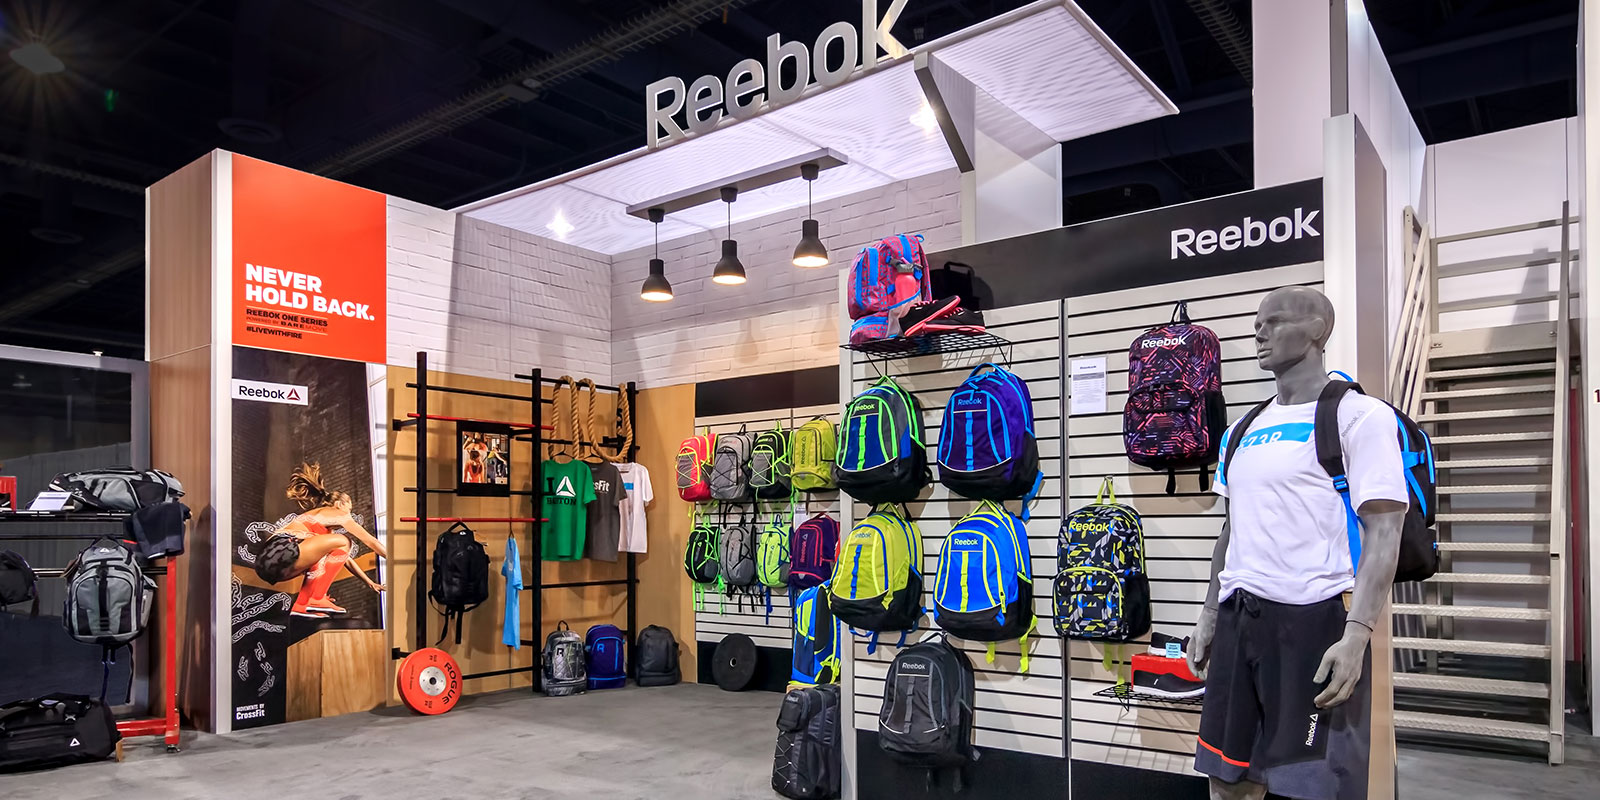 Hill & Partners Rental Branded Environment  Trade Show Exhibit for Reebok / Samsonite